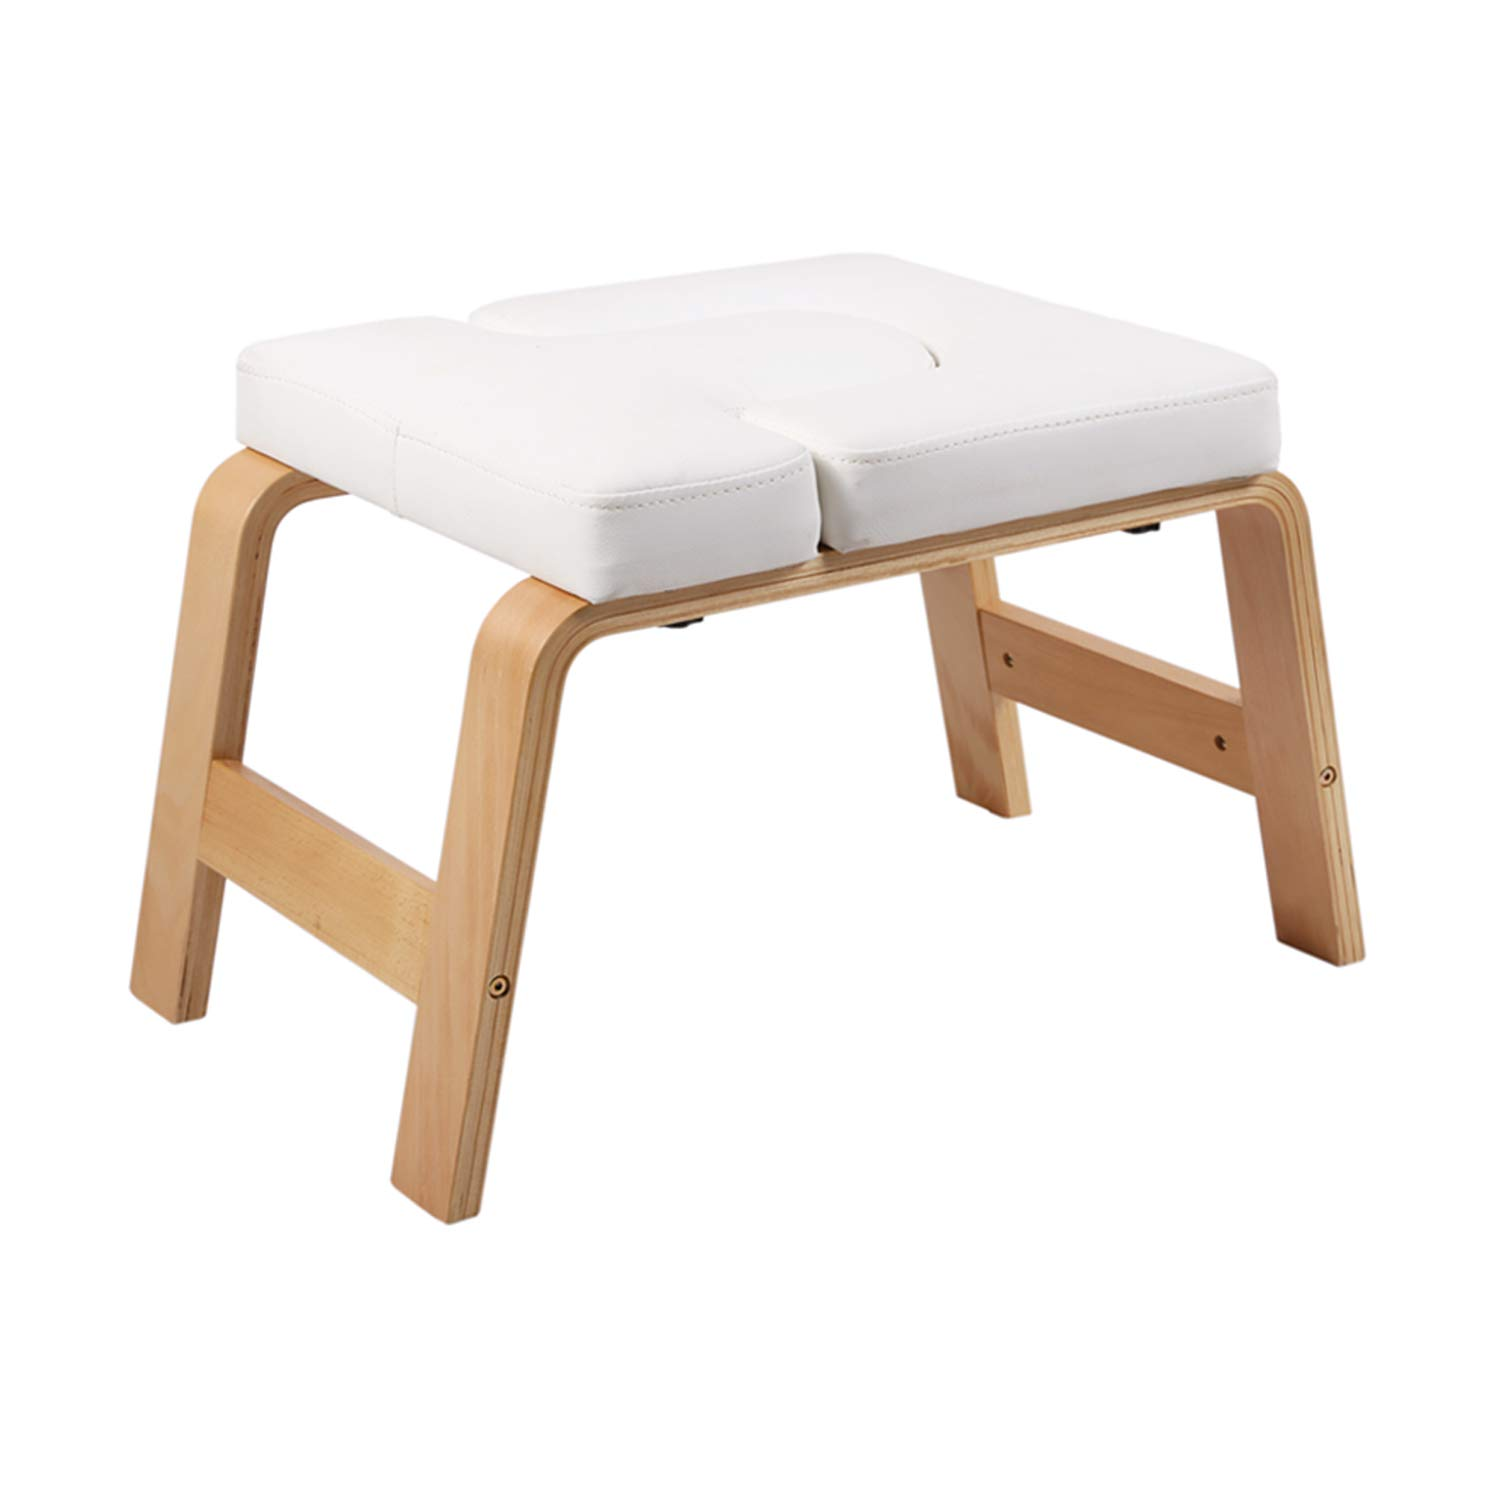 Desire Life Yoga Headstand Bench - Stand Yoga Chair for Family, Gym - Wood and PU Pads - Relieve Fatigue and Build Up Body (White) by Desire Life (Image #2)